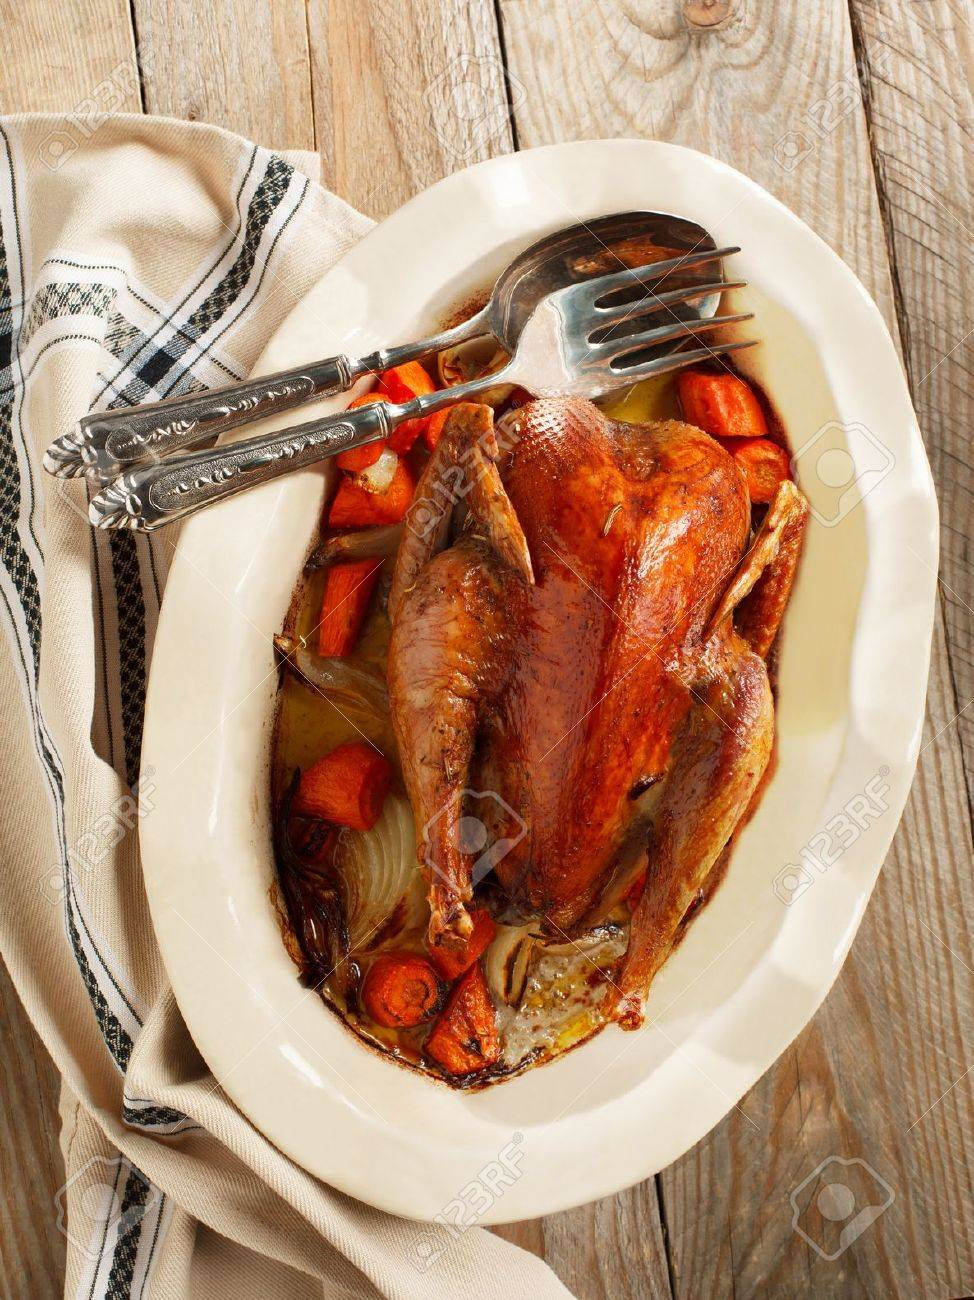 Baked pheasant in red wine with carrot and onion - 19295925